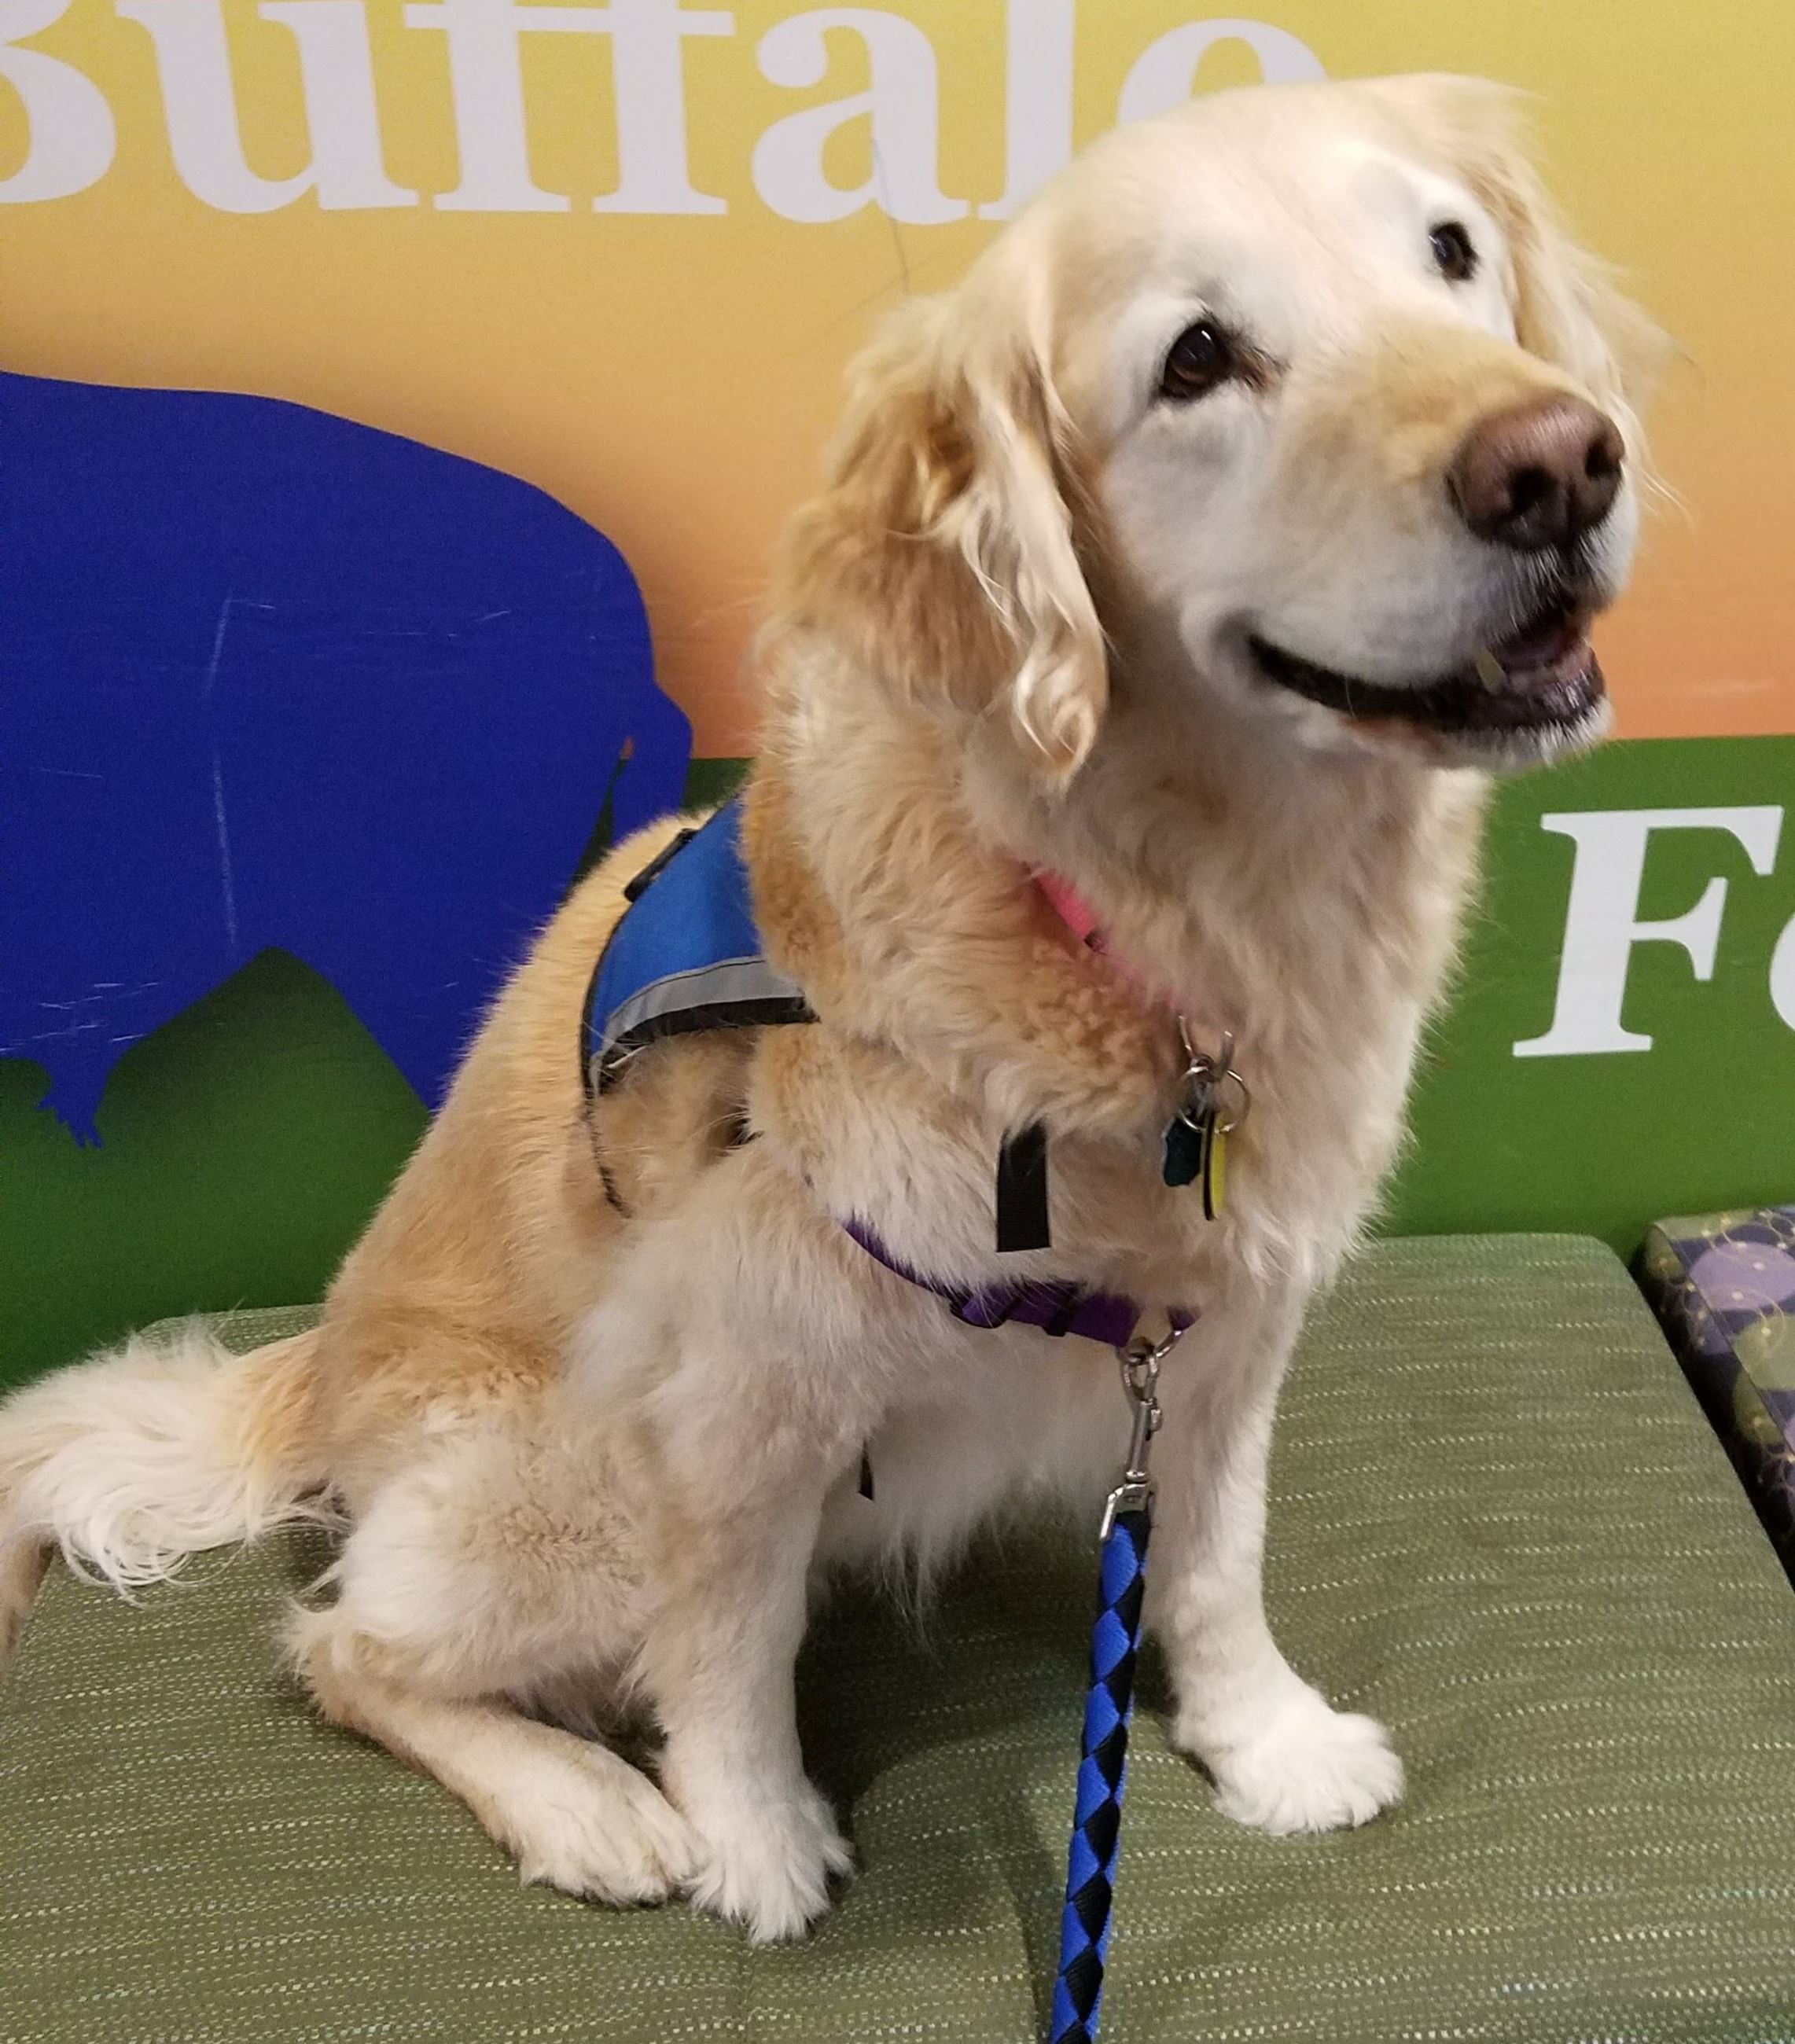 Children can read to gentle therapy dogs